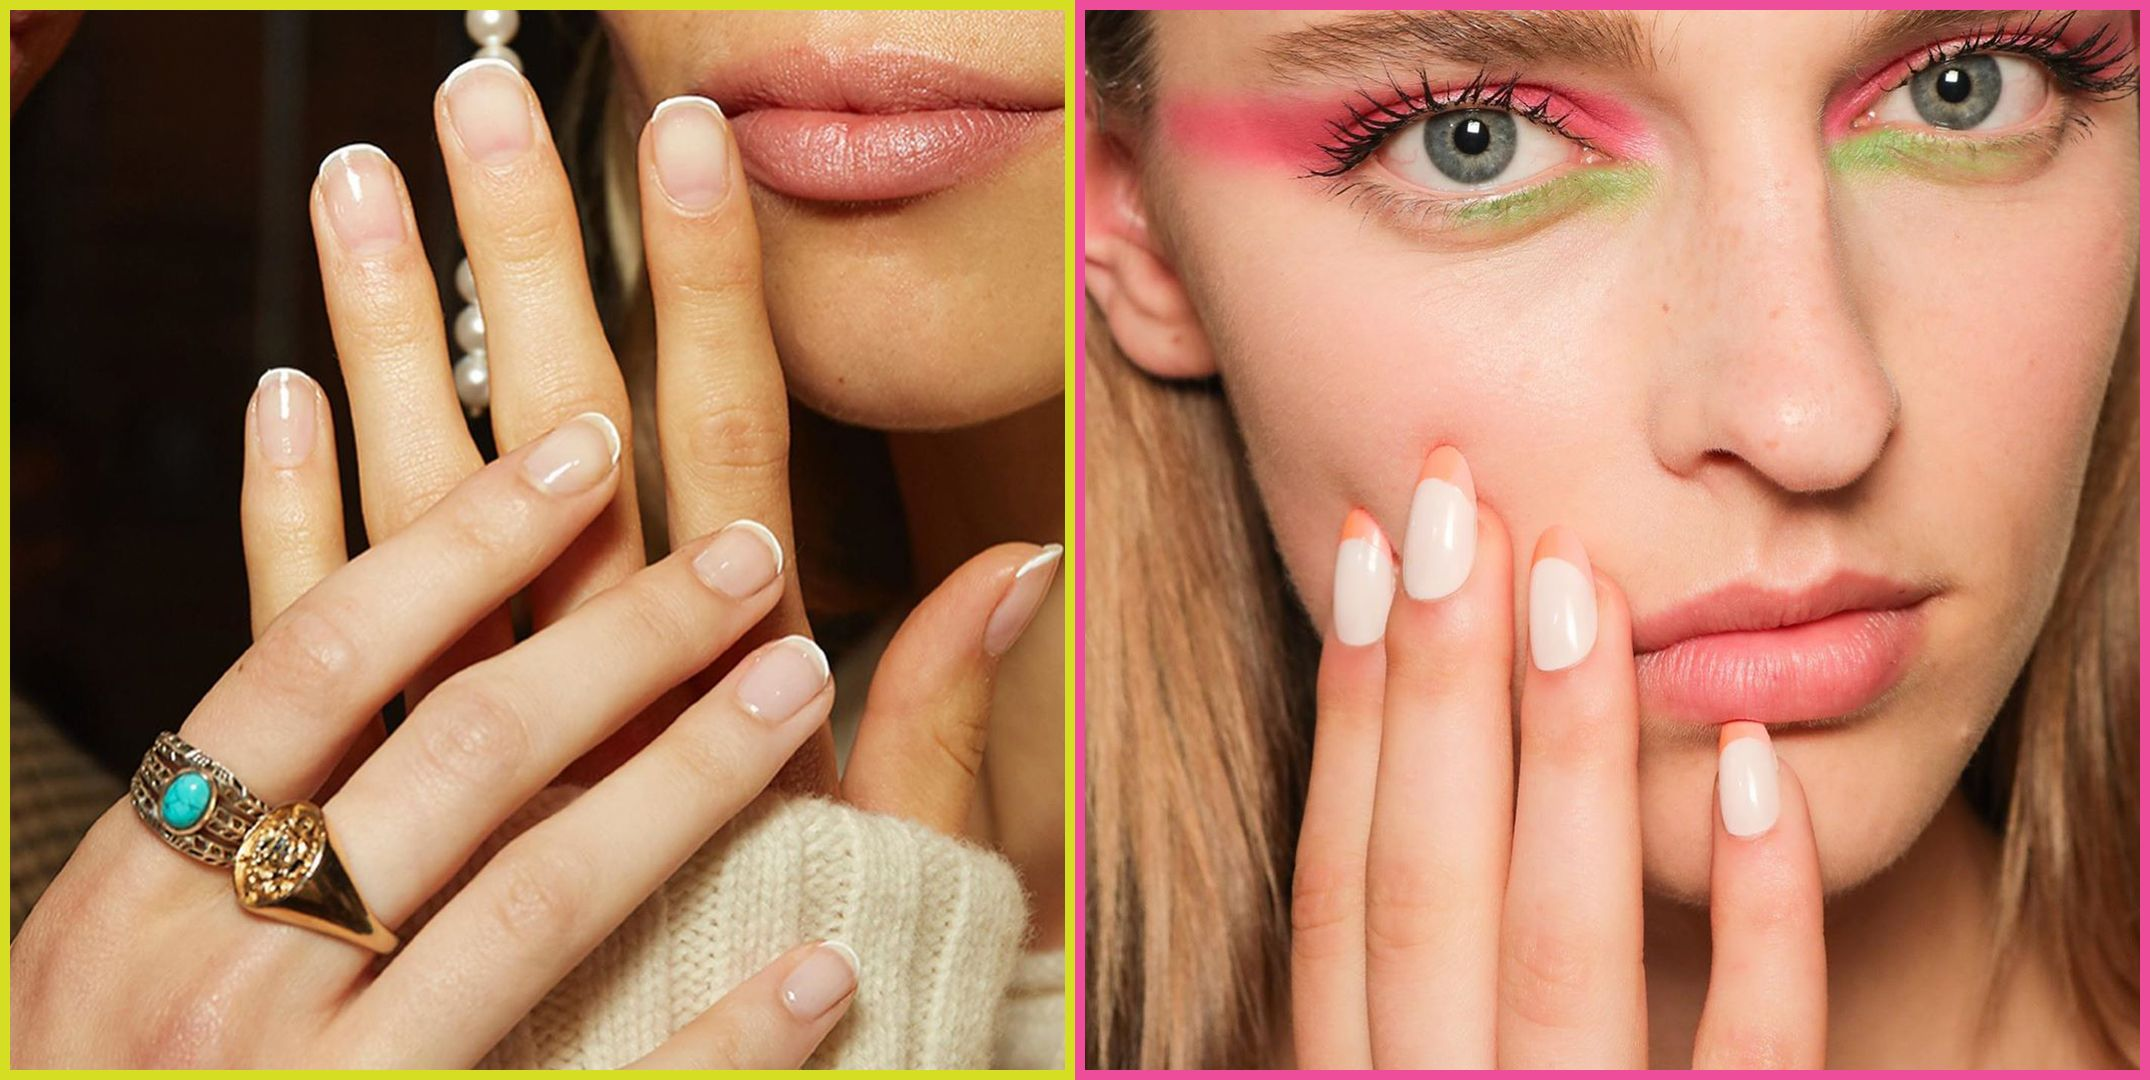 2020 Nail Color Trends.12 Best Spring 2020 Nail Trends From Fashion Week To Diy